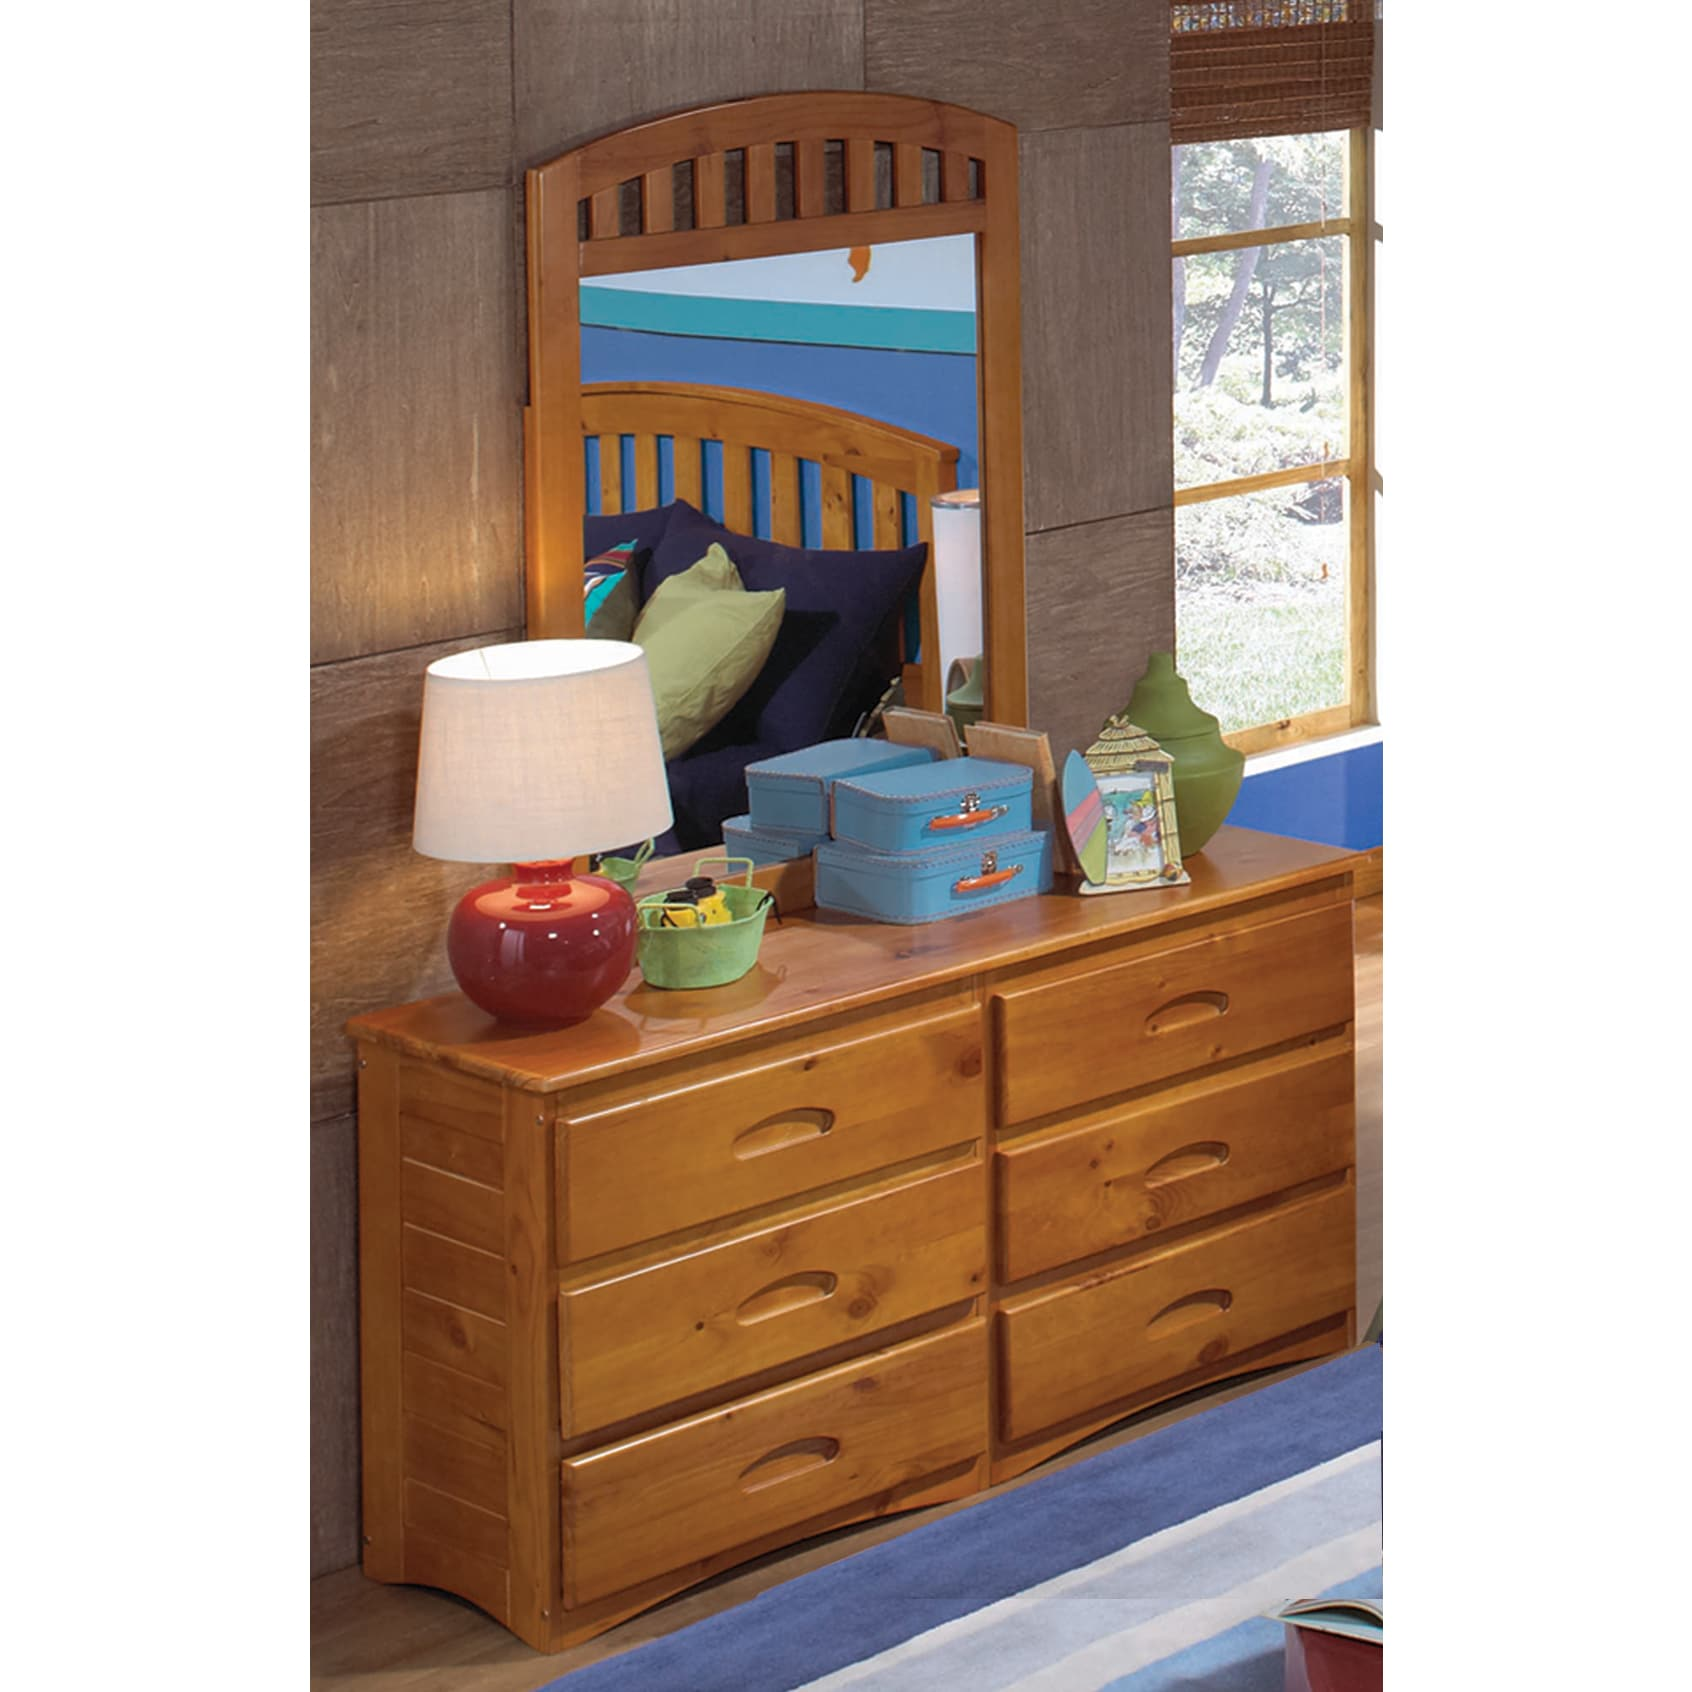 6 Drawer Honey Pine Wood Dresser